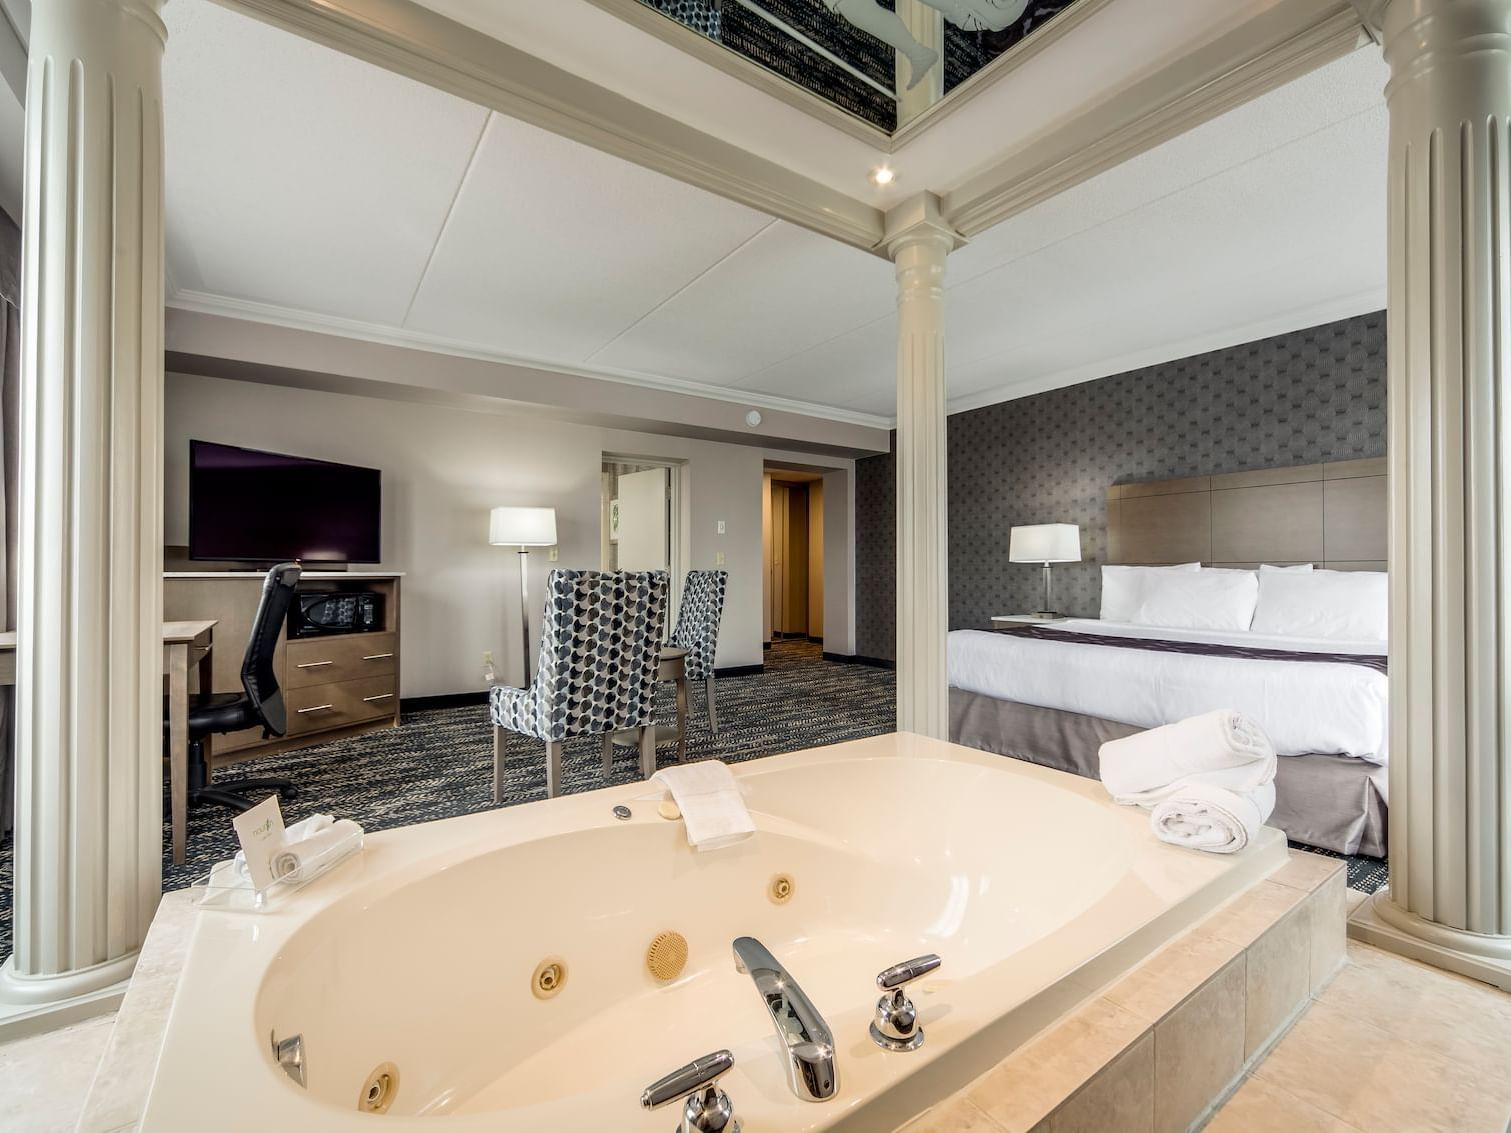 One Queen Bed with Jacuzzi - Monte Carlo Inns - Brand Site